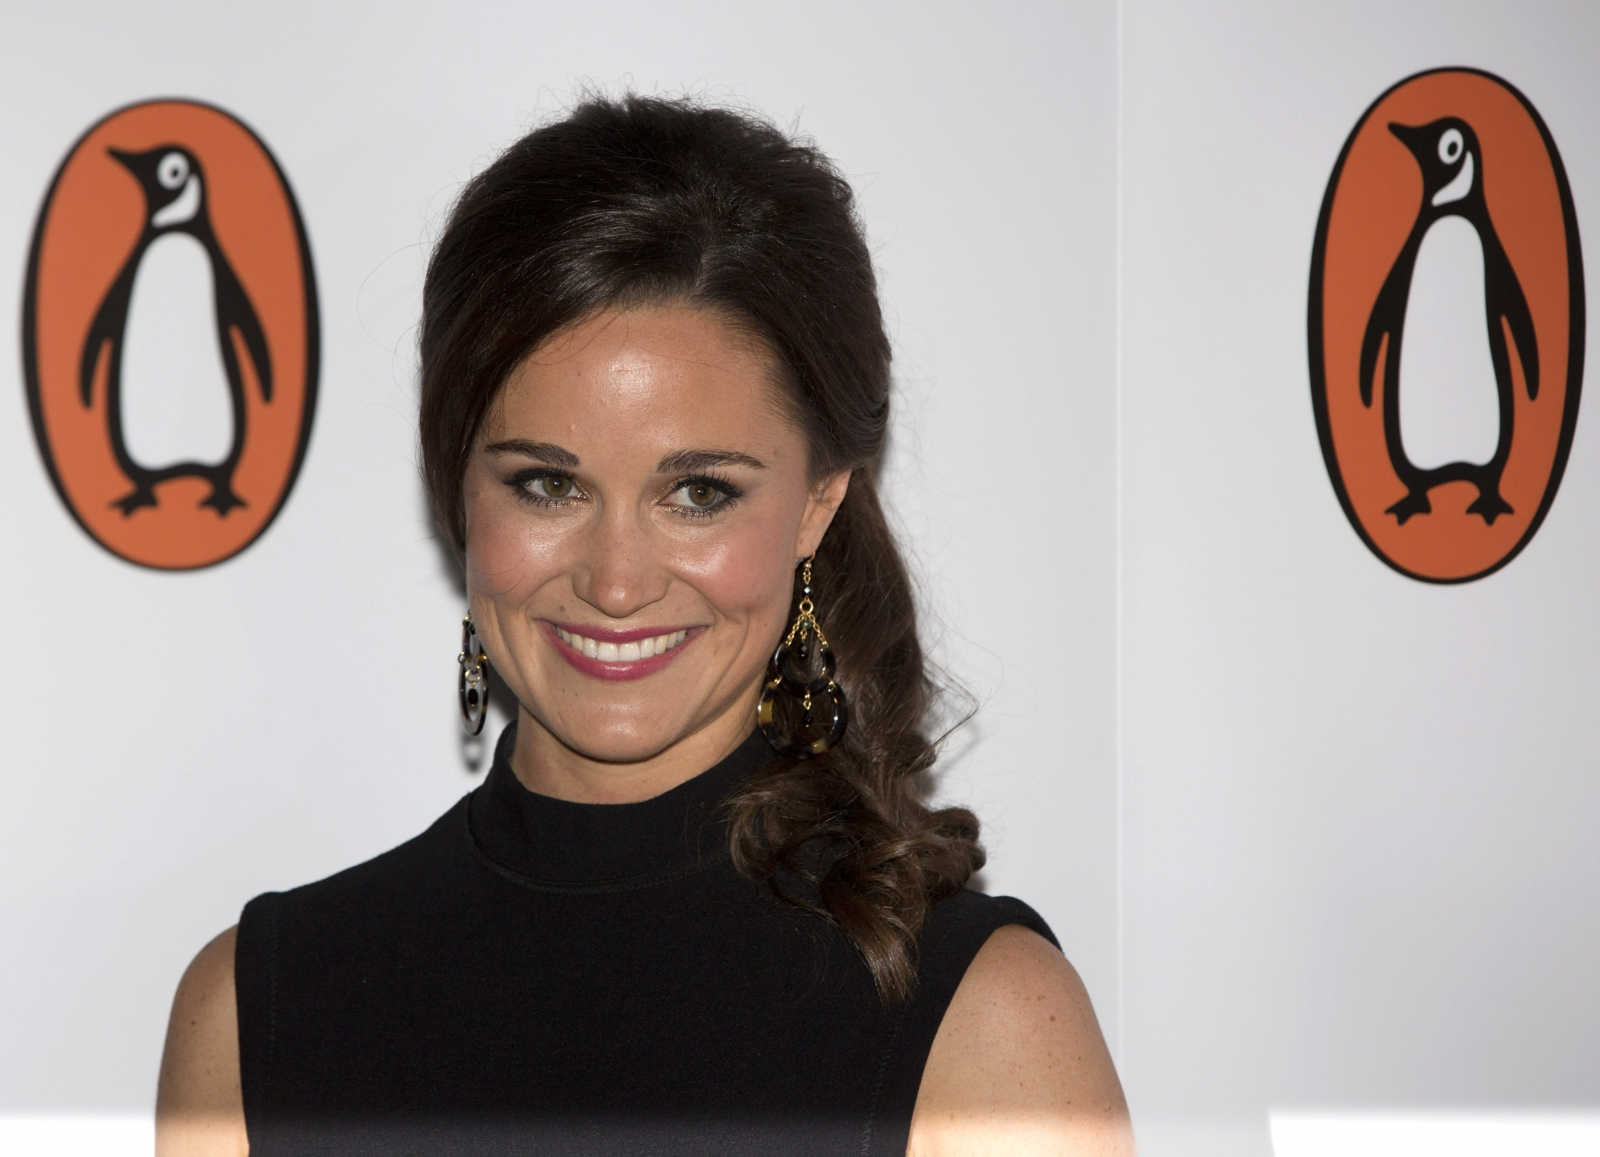 All about Pippa Middleton's pre-wedding Sirtfood diet ...